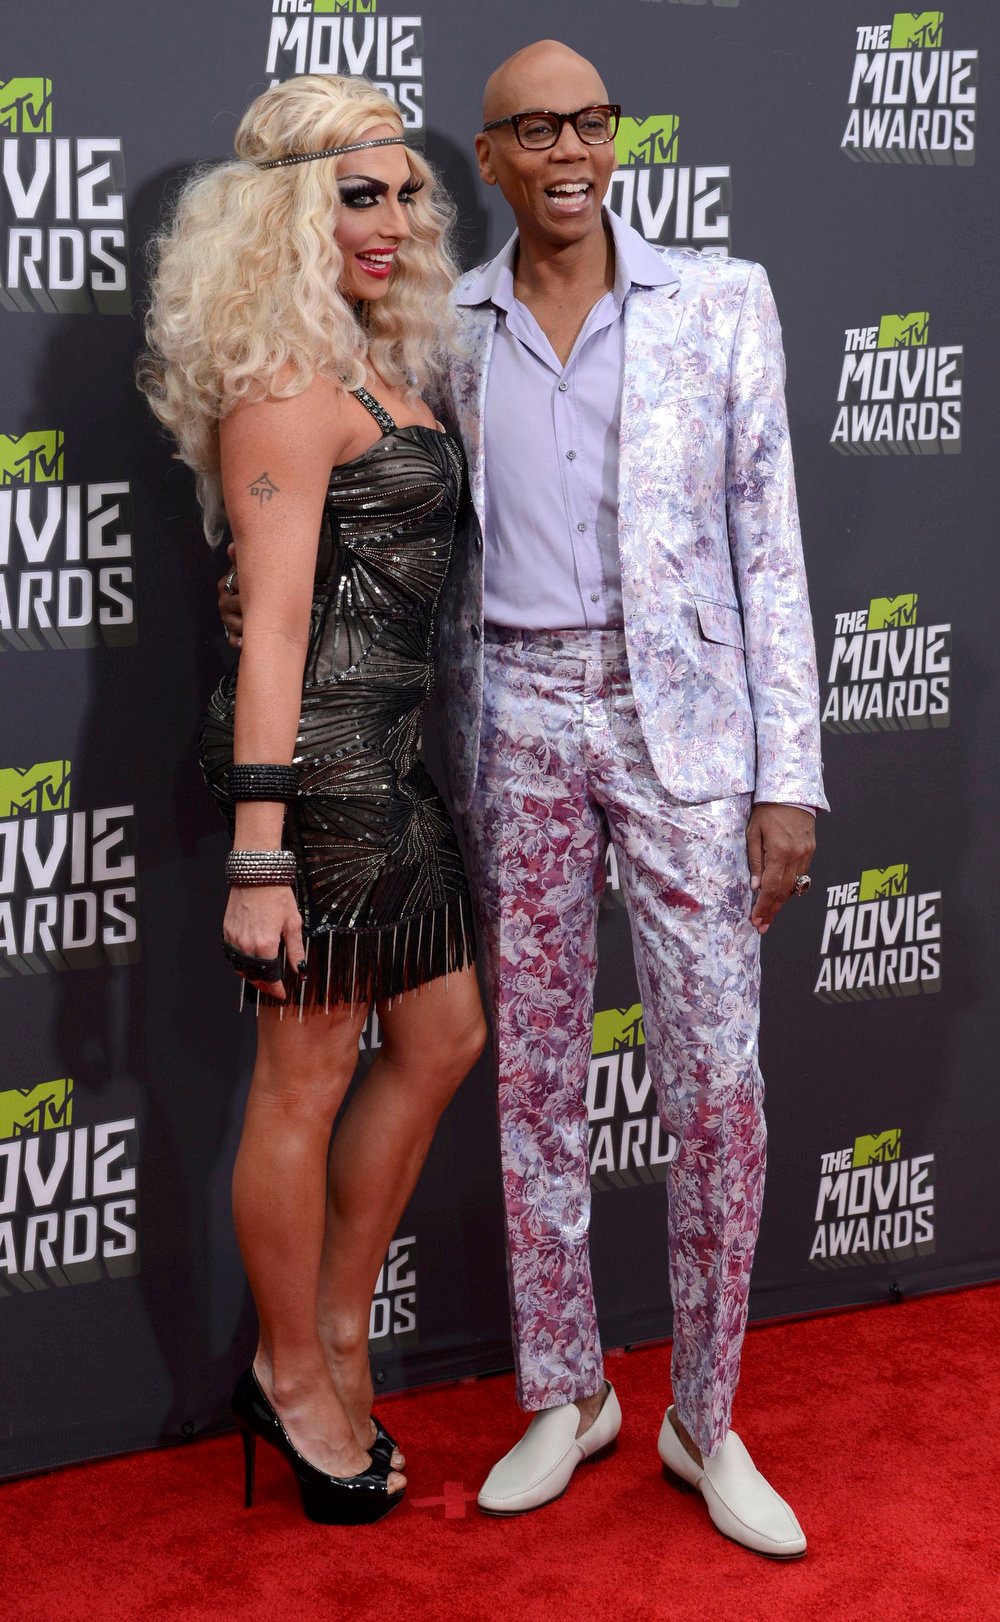 . RuPaul (R) and guest arrive at the 2013 MTV Movie Awards in Culver City, California April 14, 2013.   REUTERS/Phil McCarten